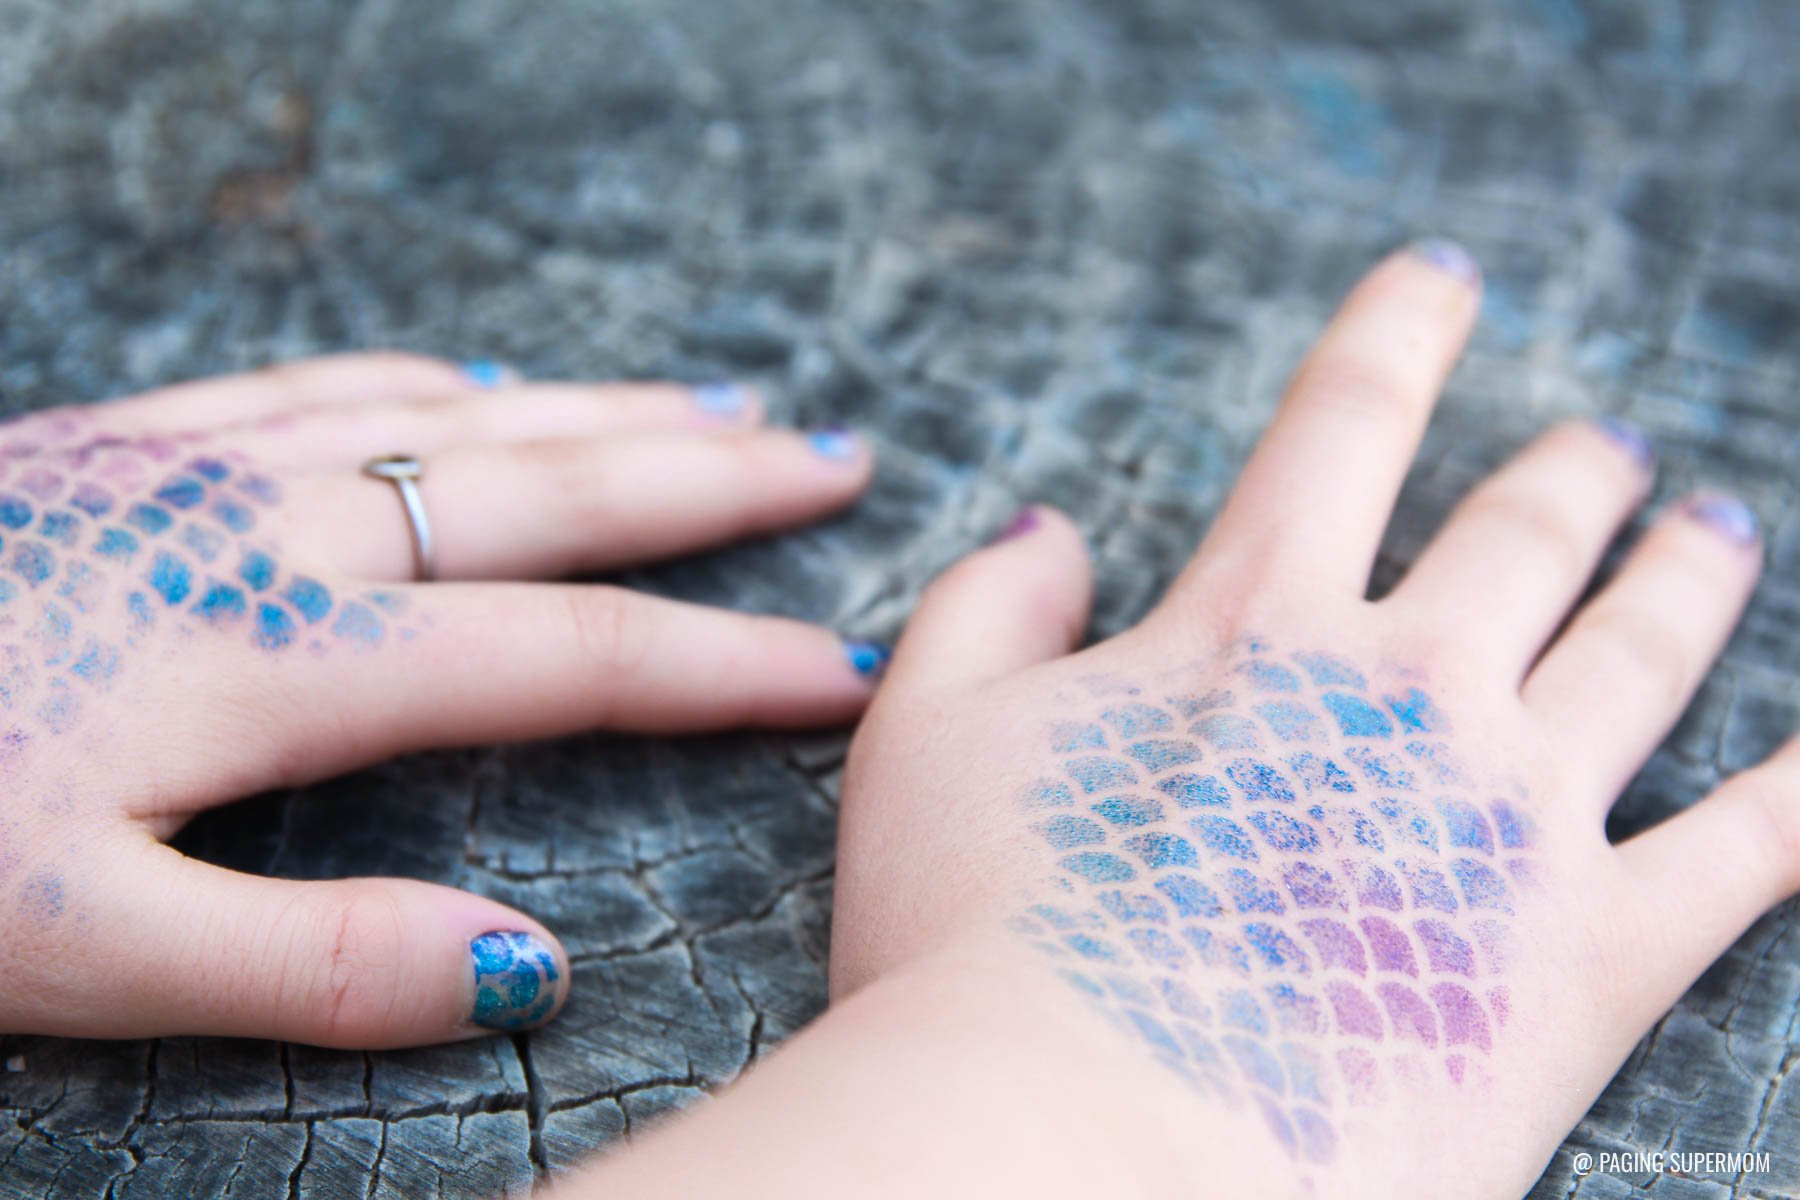 Mermaid Manicure using Cricut cut stencil. Tutorial via @PagingSupermom